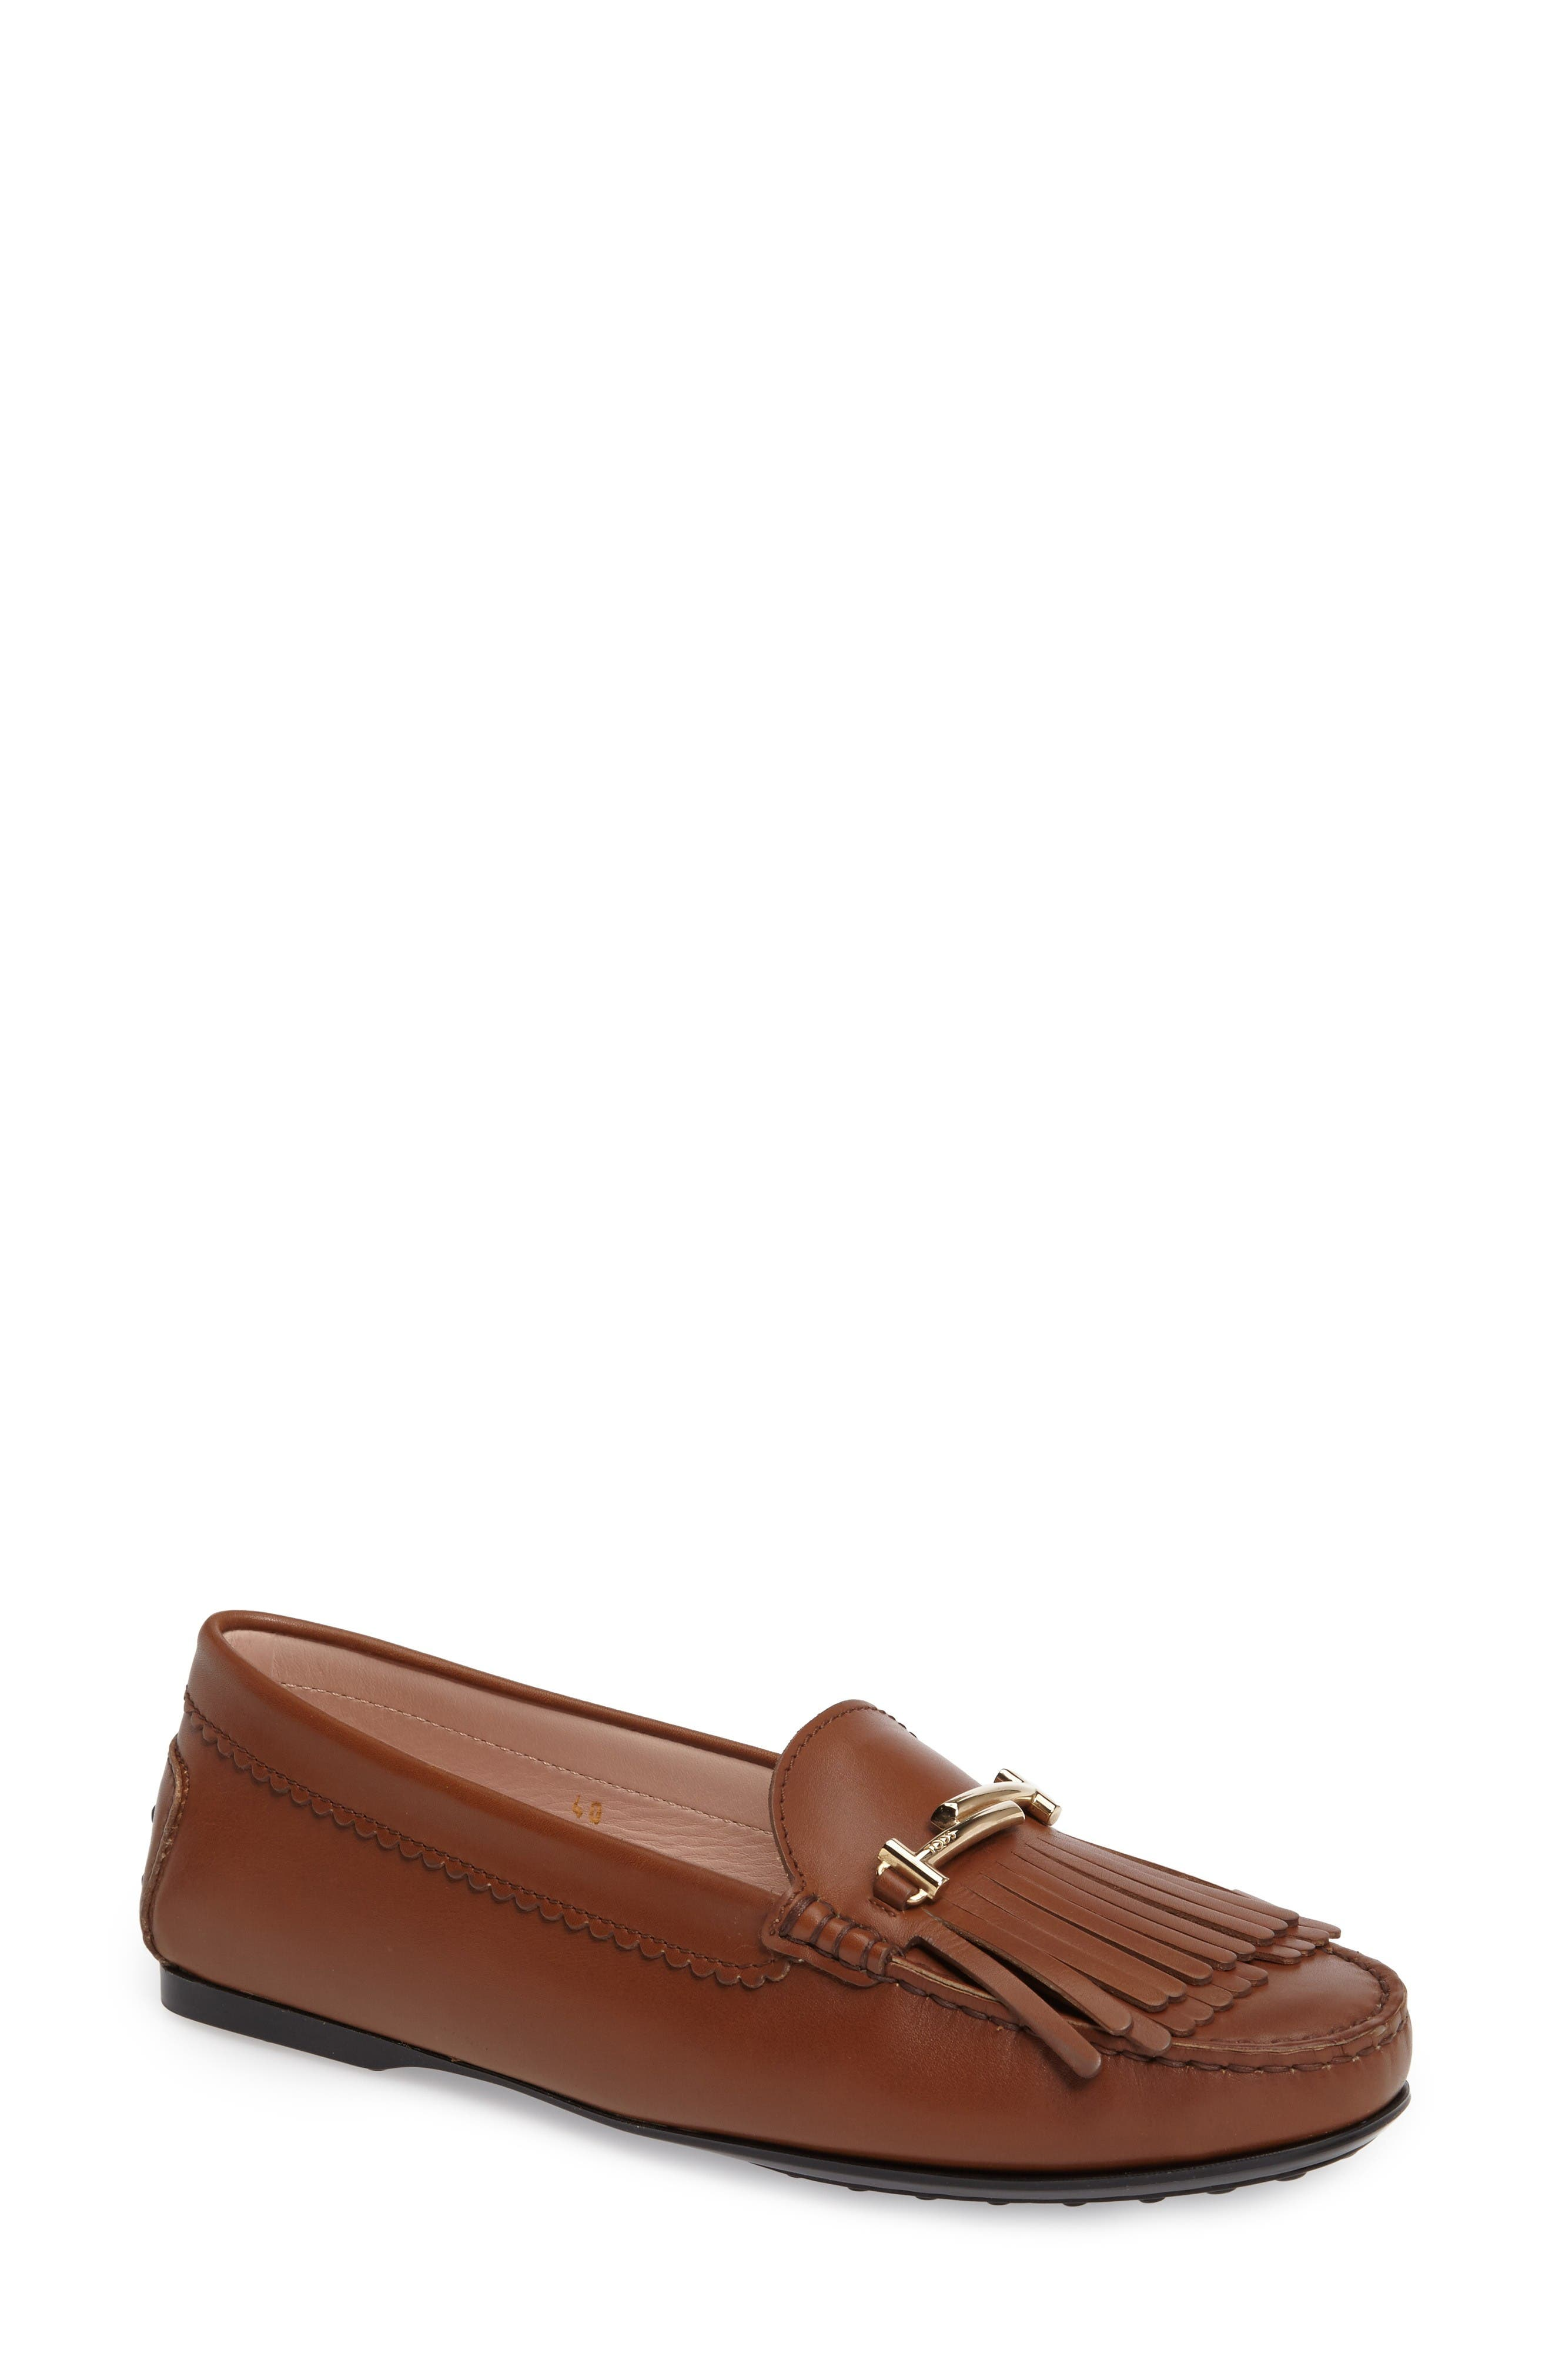 TOD'S City Gommino Driving Loafer